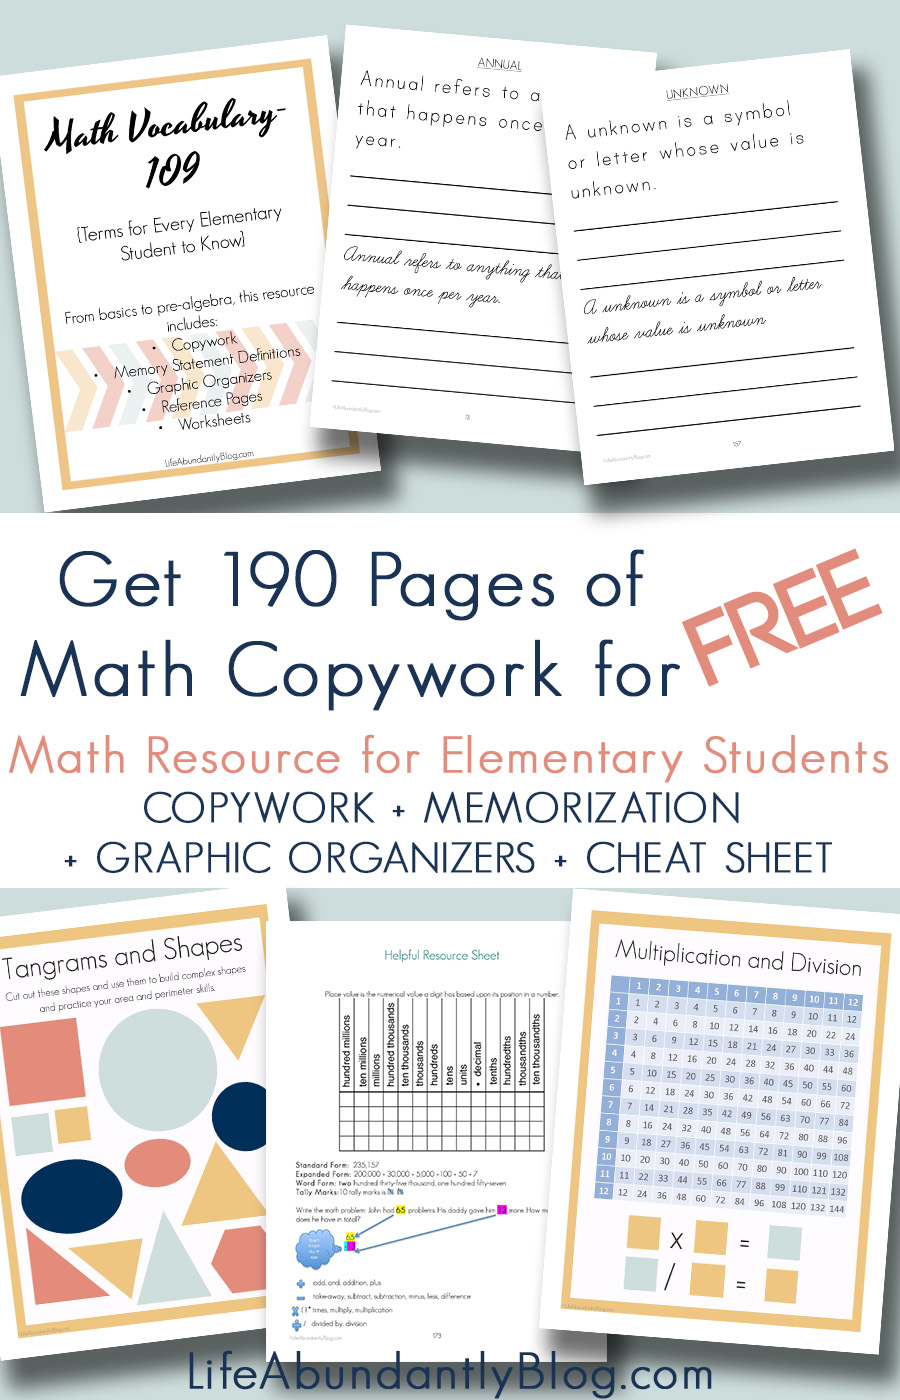 Huge Elementary Math Copywork Workbook And How To Get It For Free